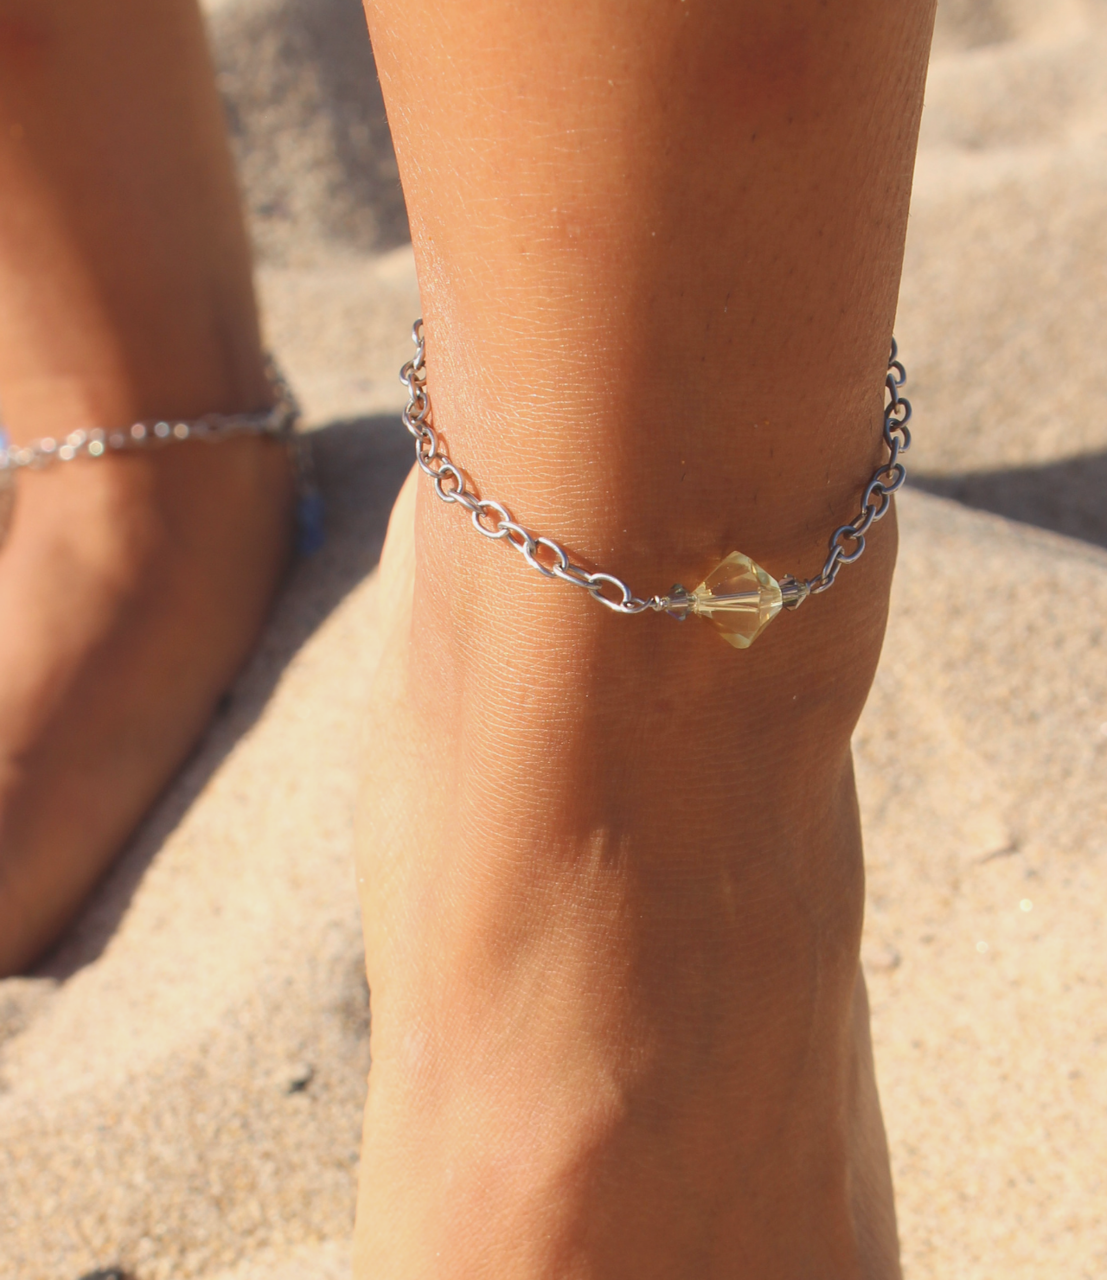 yellow stone chain anklet on foot at beach